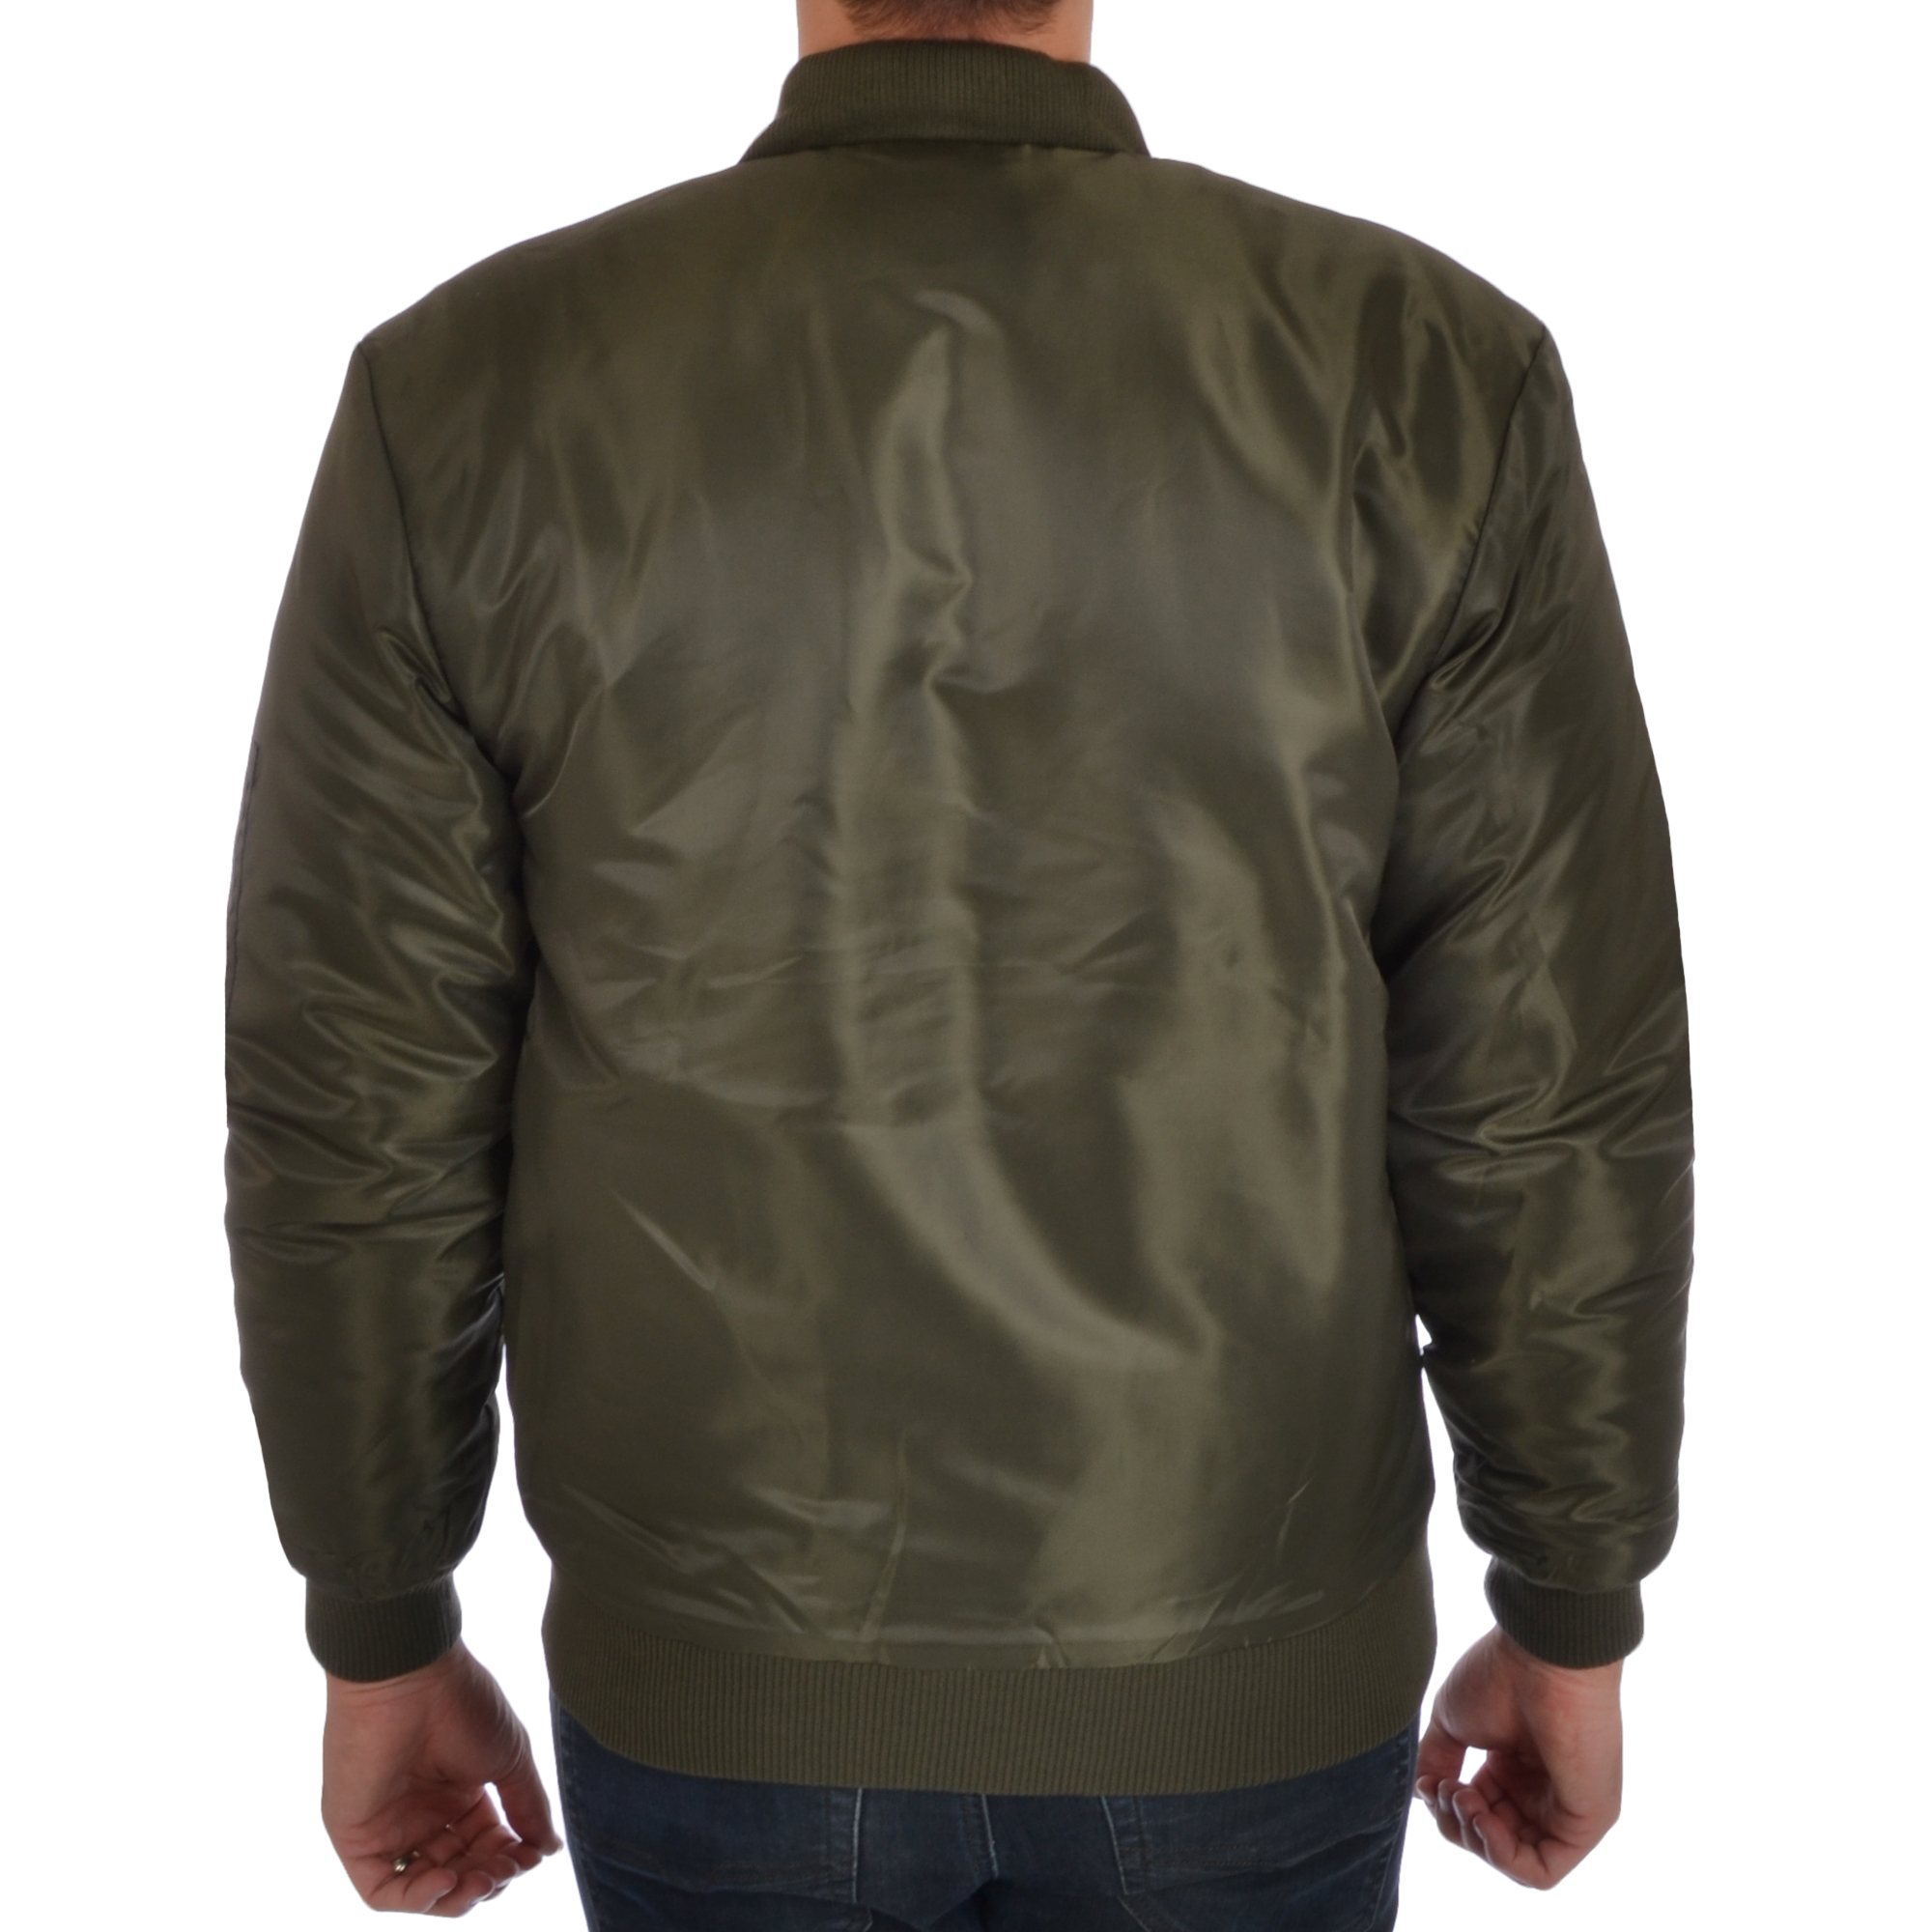 Soul Star Mens MA1 Padded Bomber Jacket Military Flight Coat | eBay